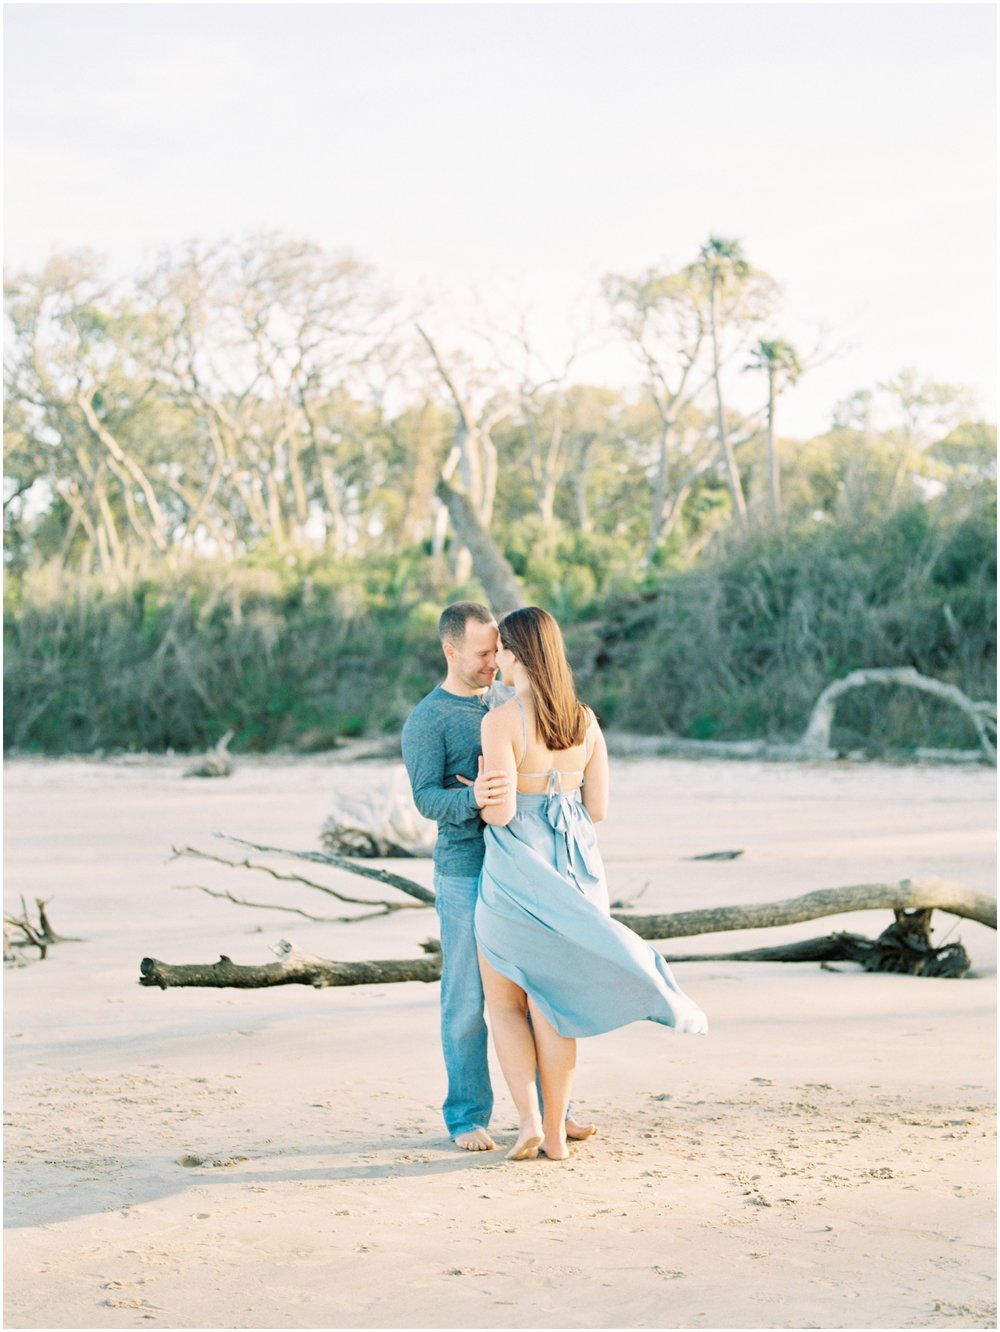 Lisa Silva Photography -Engagement Session at Big Talbot Island- Jacksonville and North East Florida Fine Art Film Photographer_0042.jpg